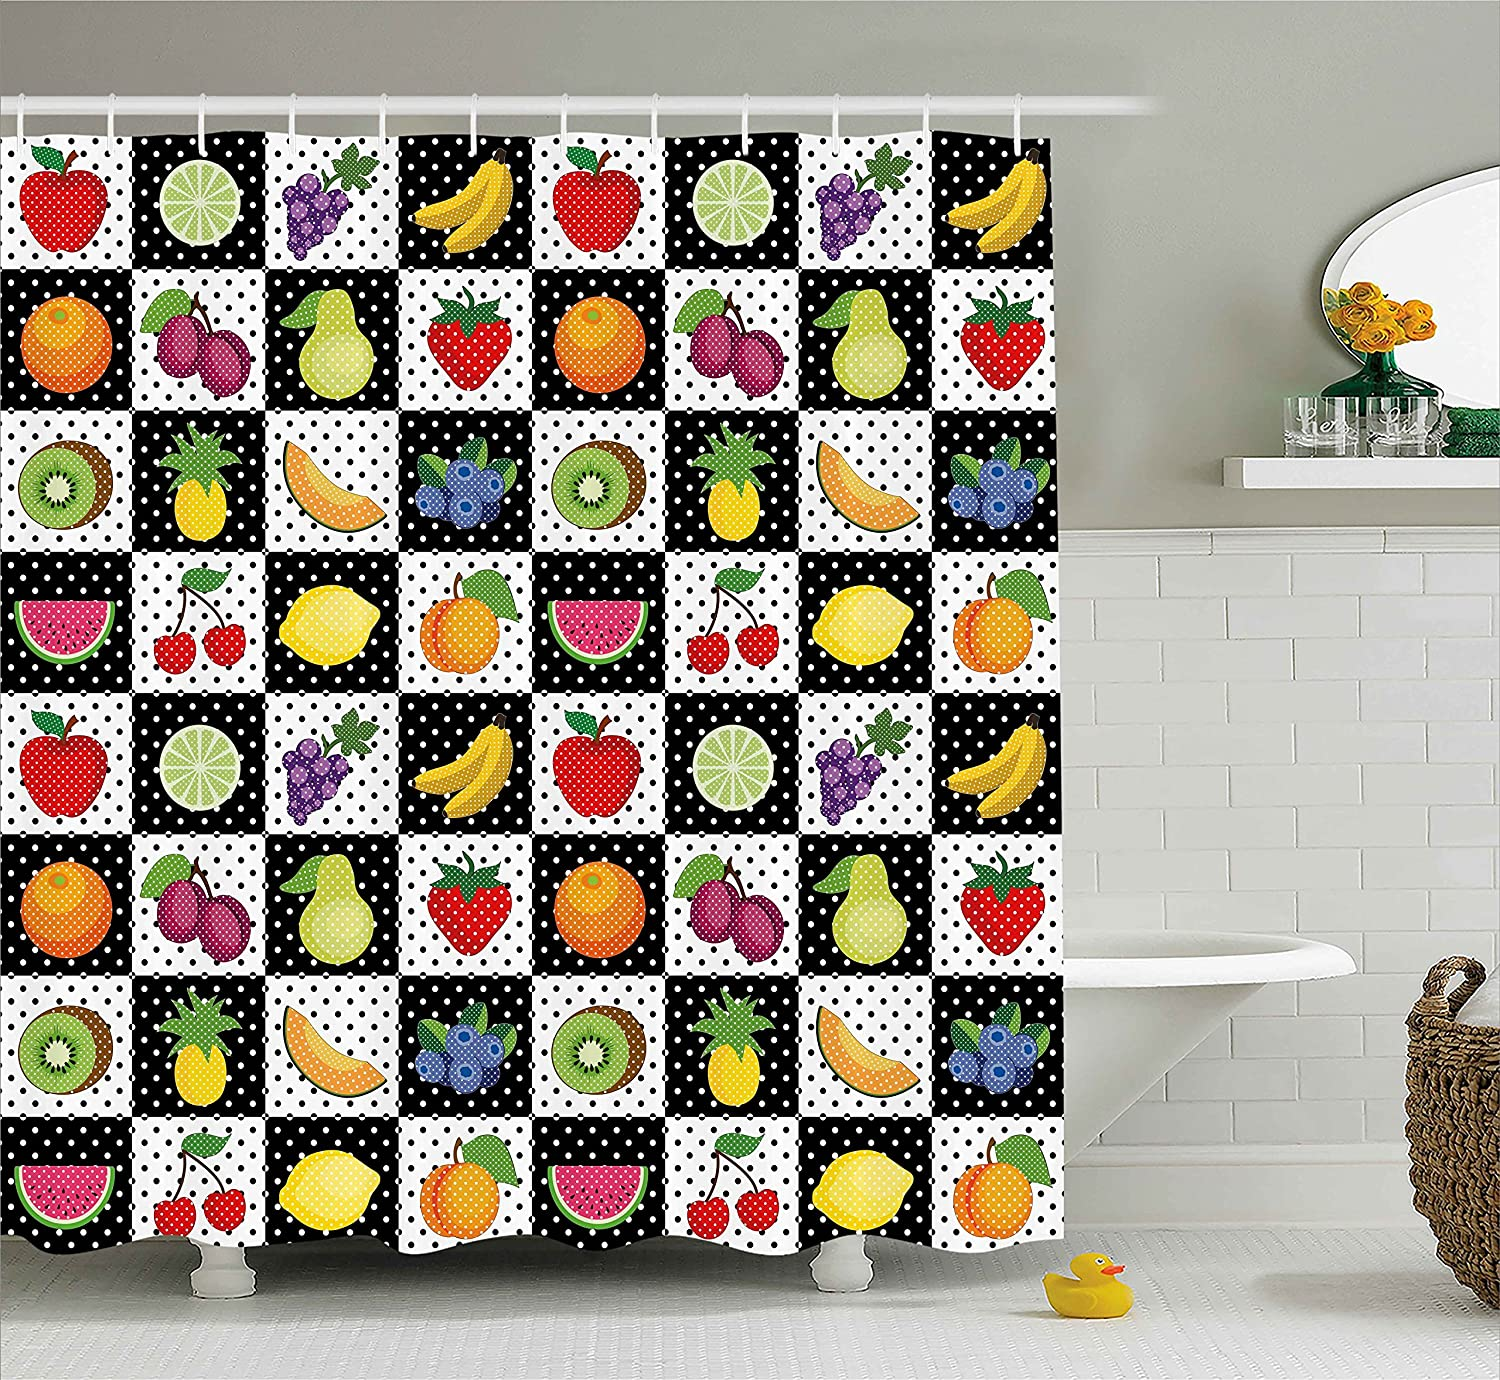 Ambesonne Black and White Decor Shower Curtain, Kitchen Fruits Vegetables Nature with Dots Chess Squares Art Design, Fabric Bathroom Decor Set with Hooks, 70 Inches, Multicolor